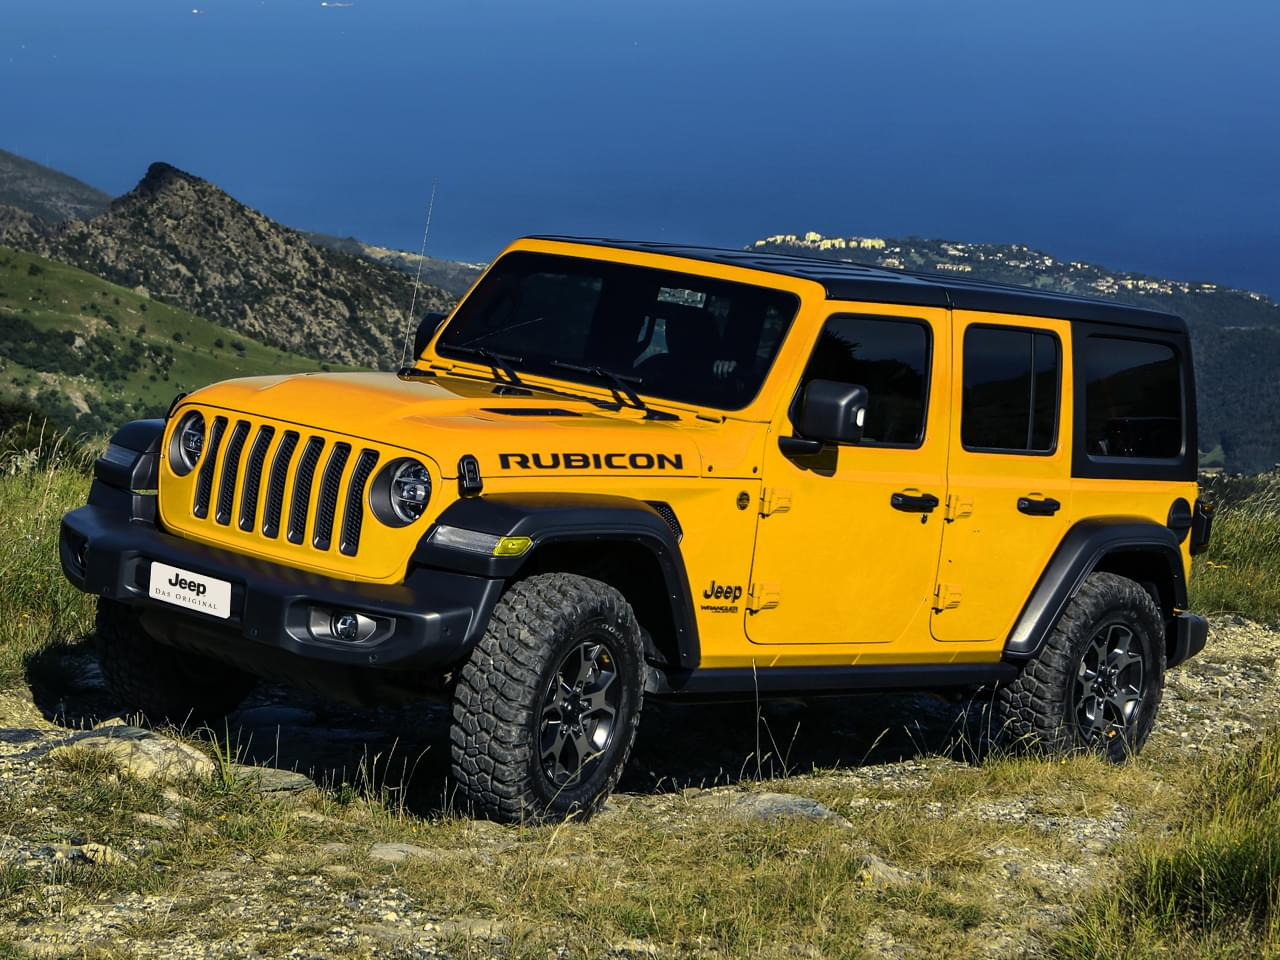 Jeep Wrangler Unlimited 2.2 CRDi Rubicon 200PS 4x4 AT8